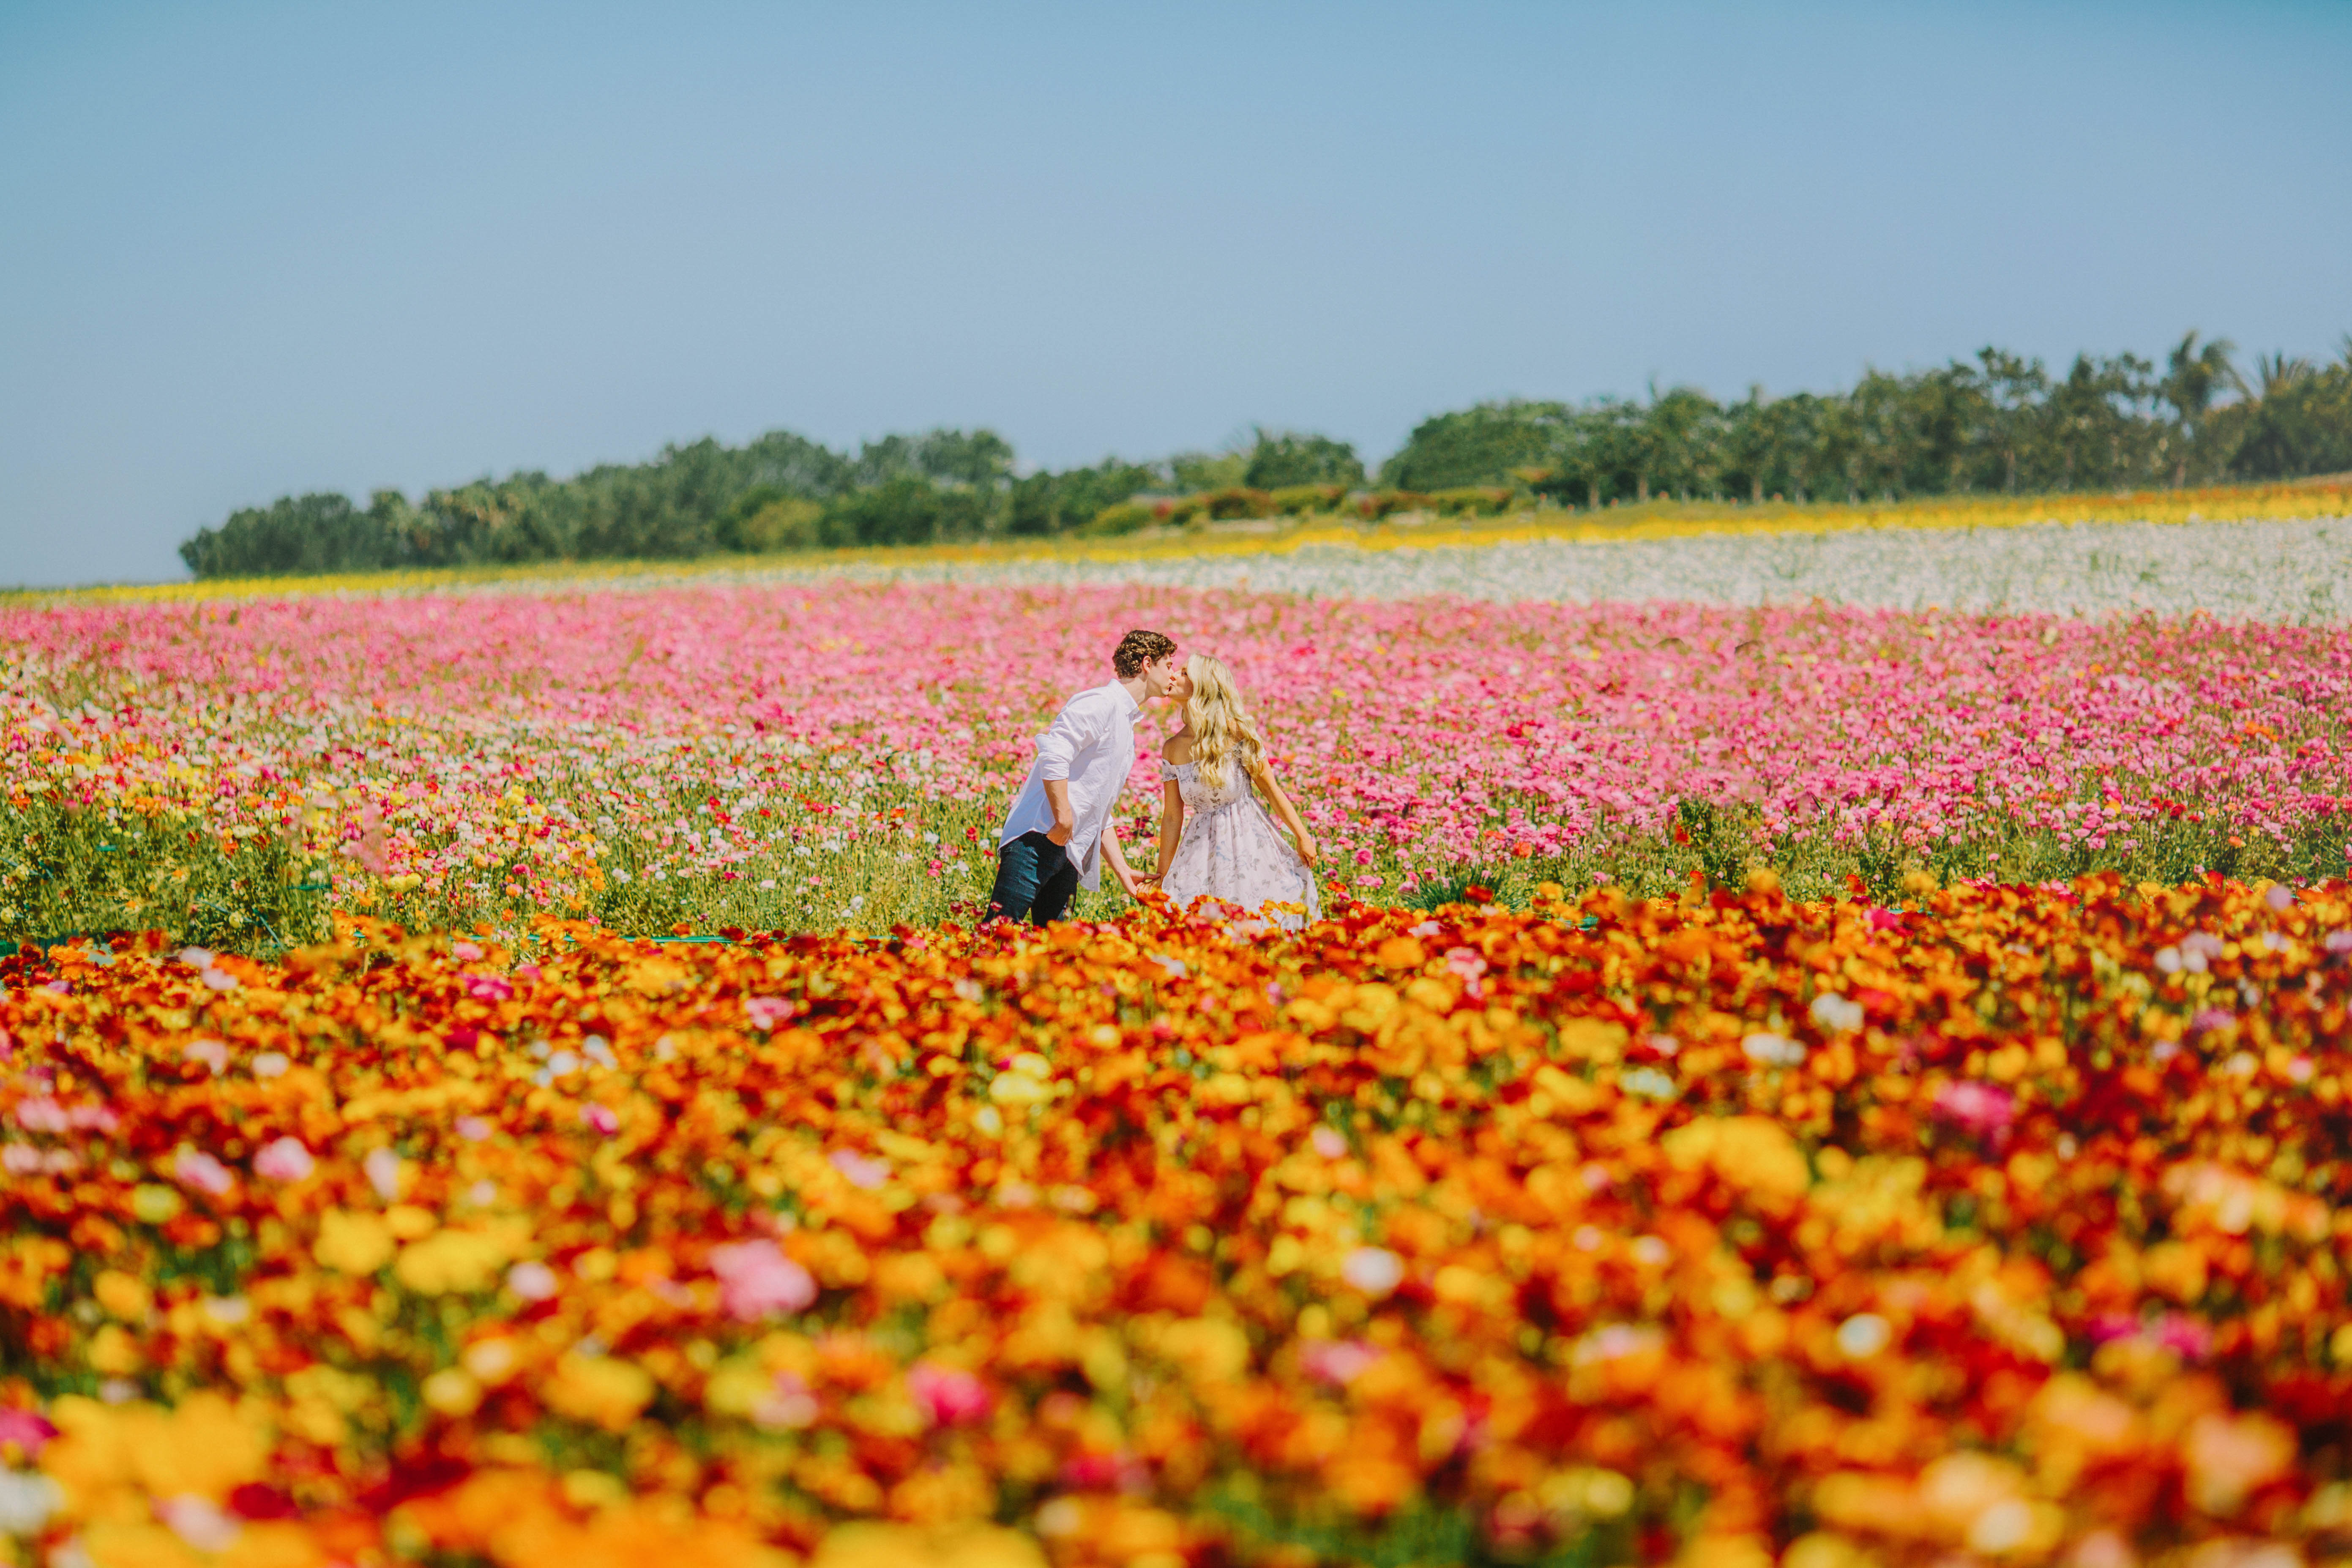 The Flower Fields at Carlsbad Ranch in Carlsbad, California